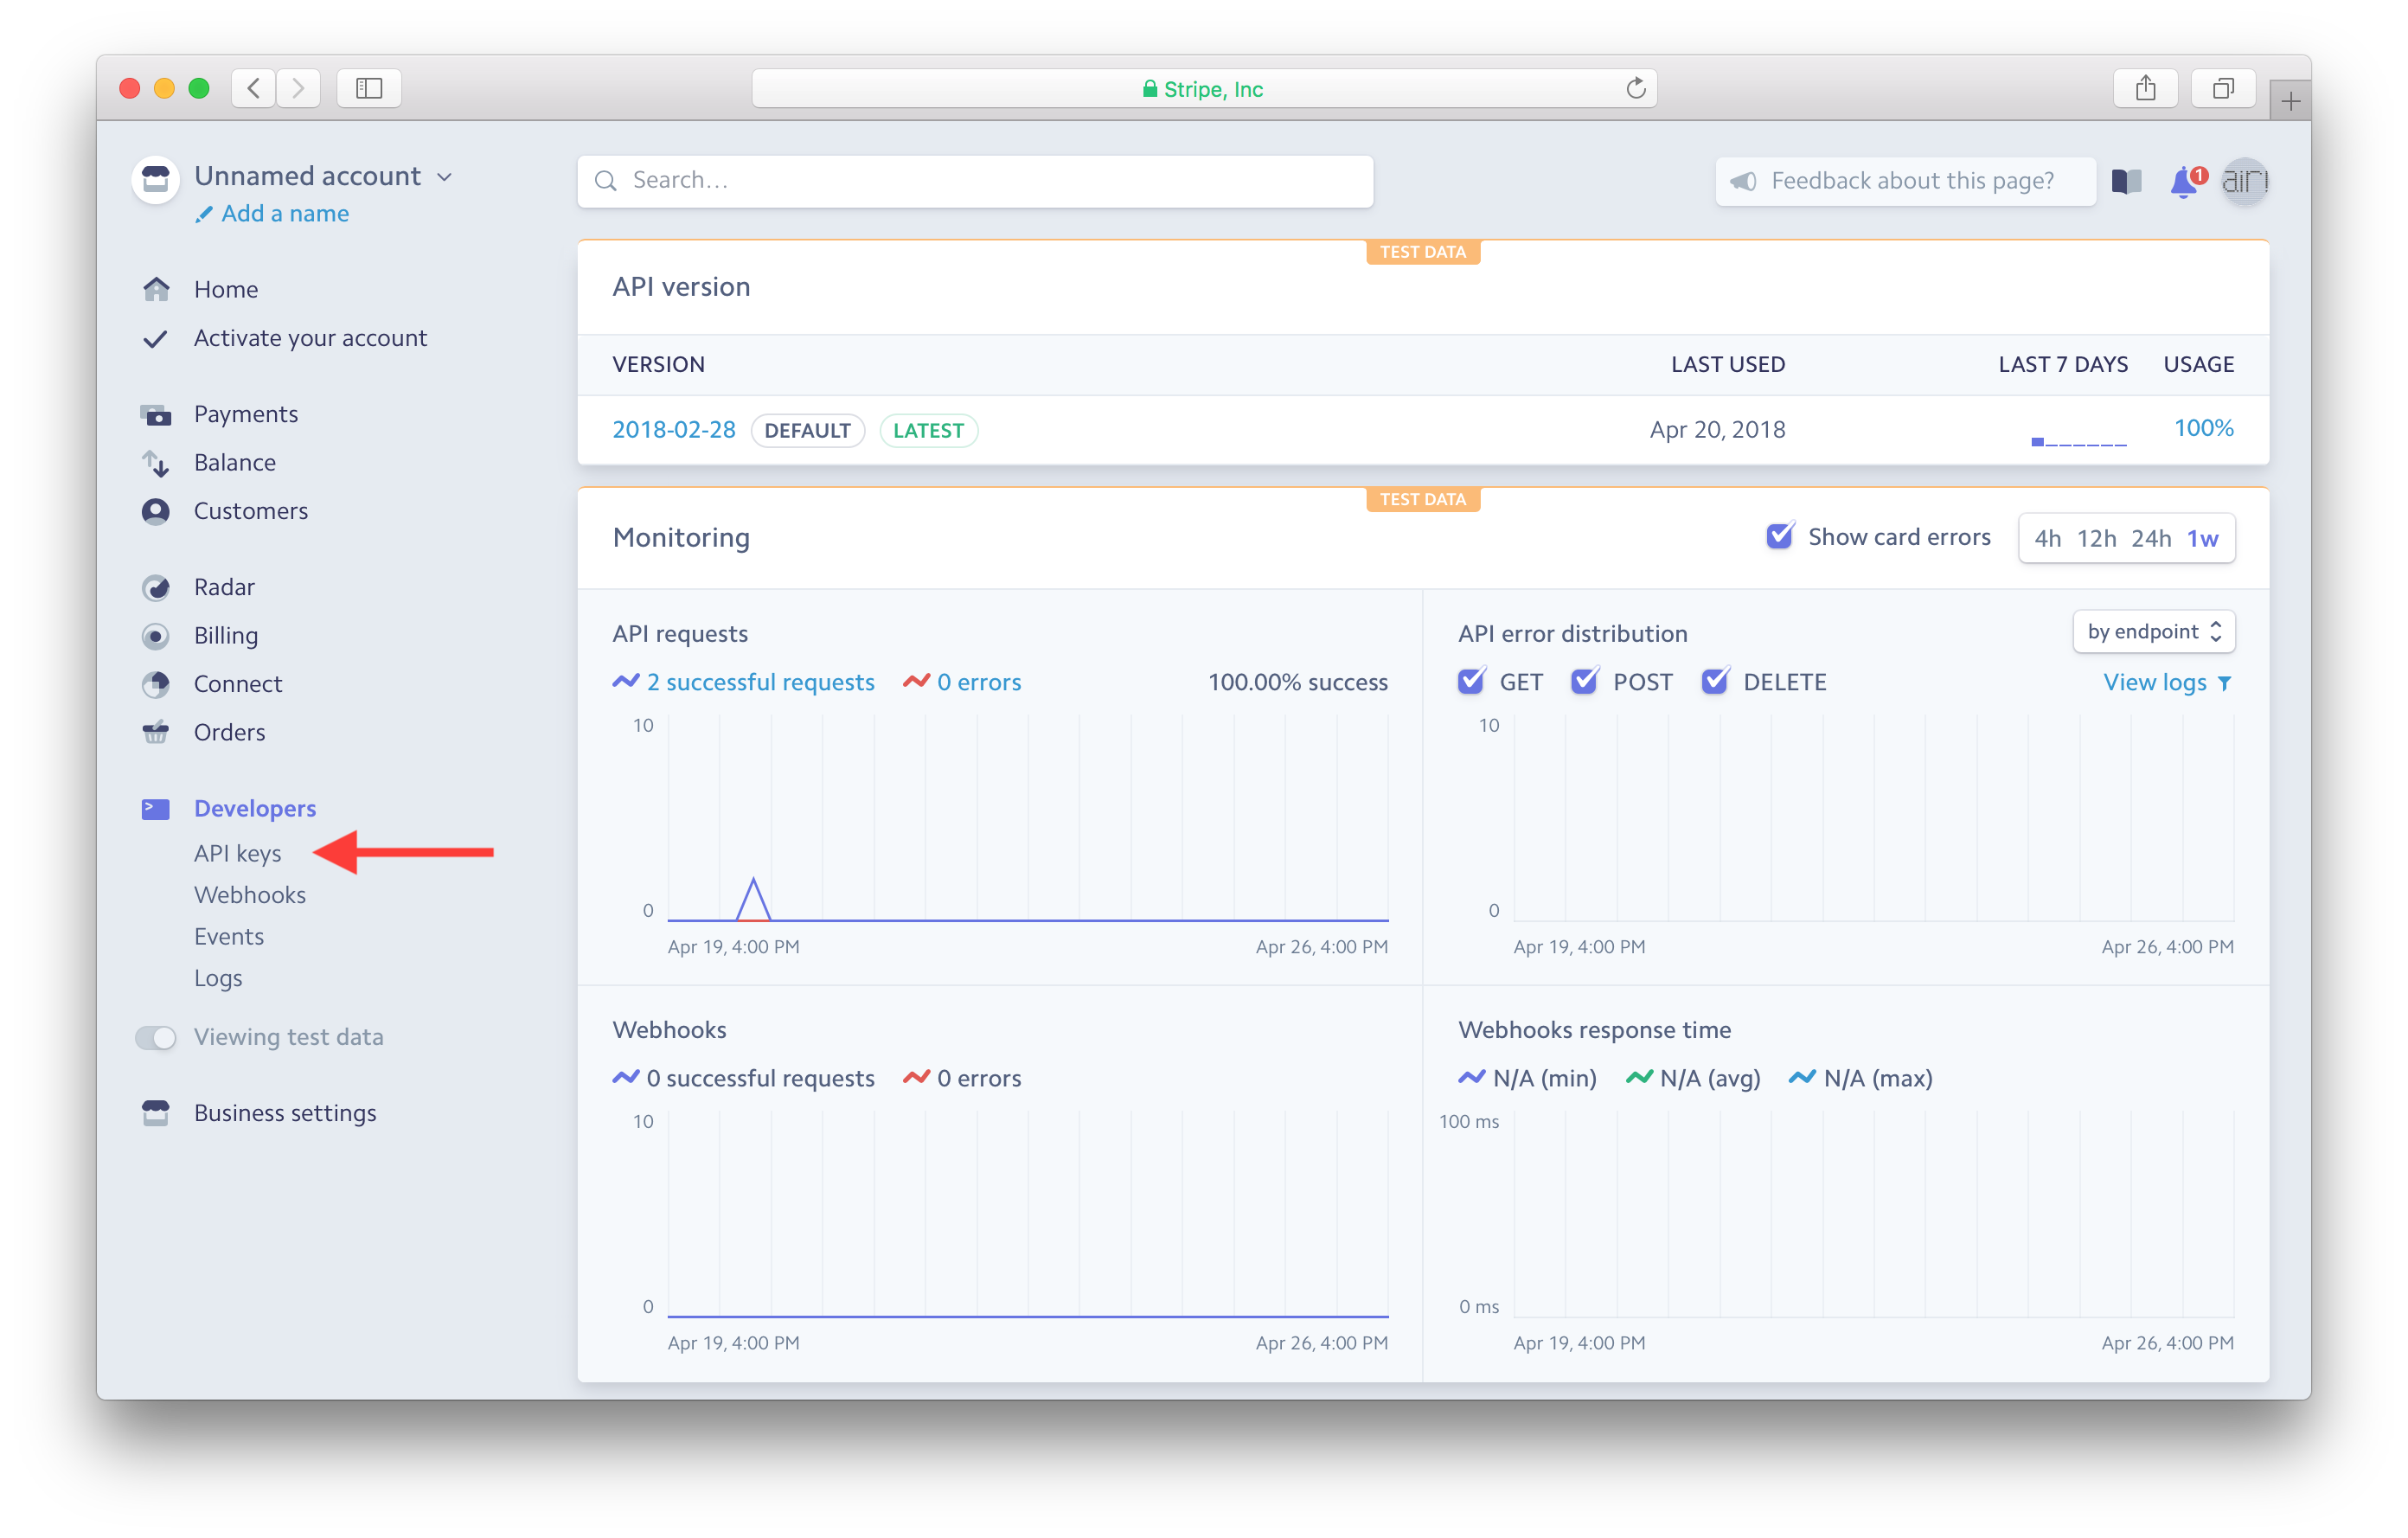 Developer section in Stripe dashboard screenshot